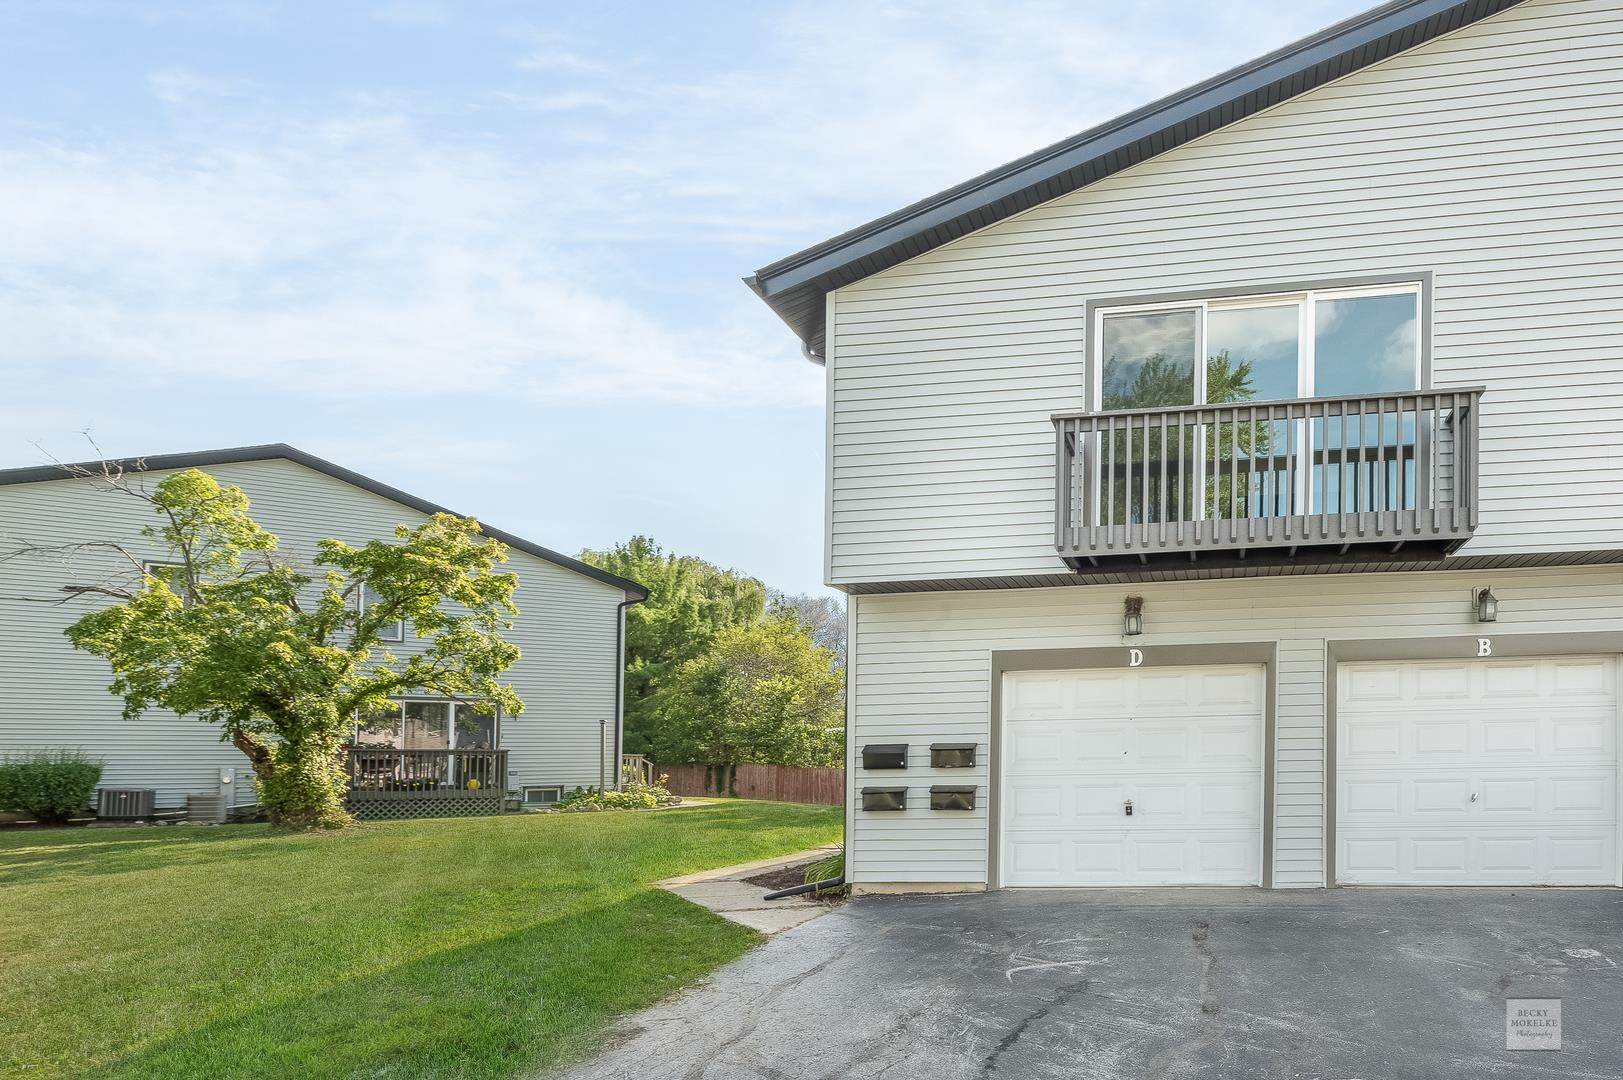 1886 Carnation Court #D, Aurora, IL 60506 - #: 10806046